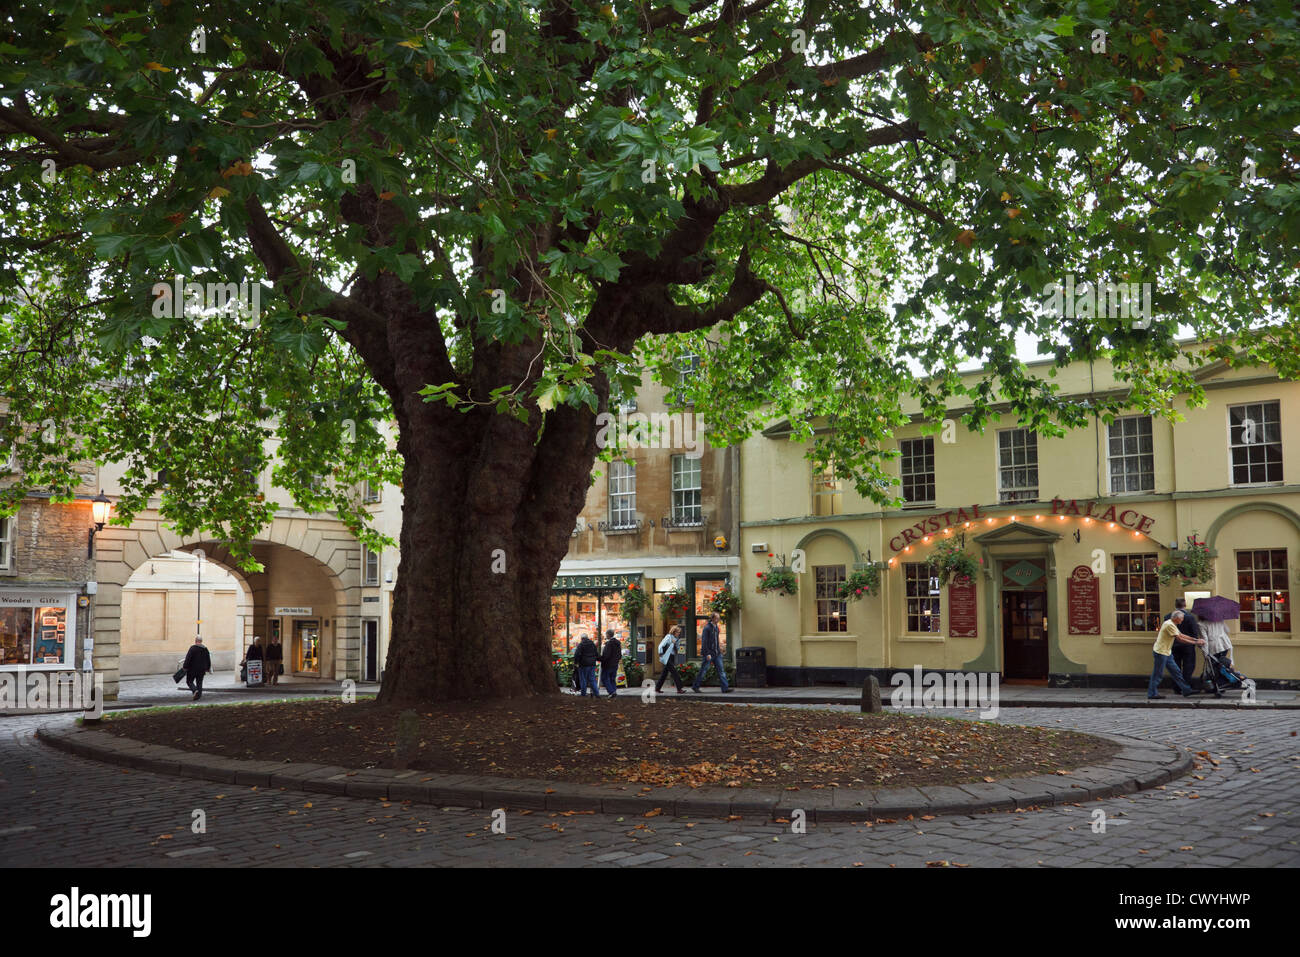 Large old London Plane tree planted 1790 shading square in historic city square. Abbey Green Bath Somerset England - Stock Image